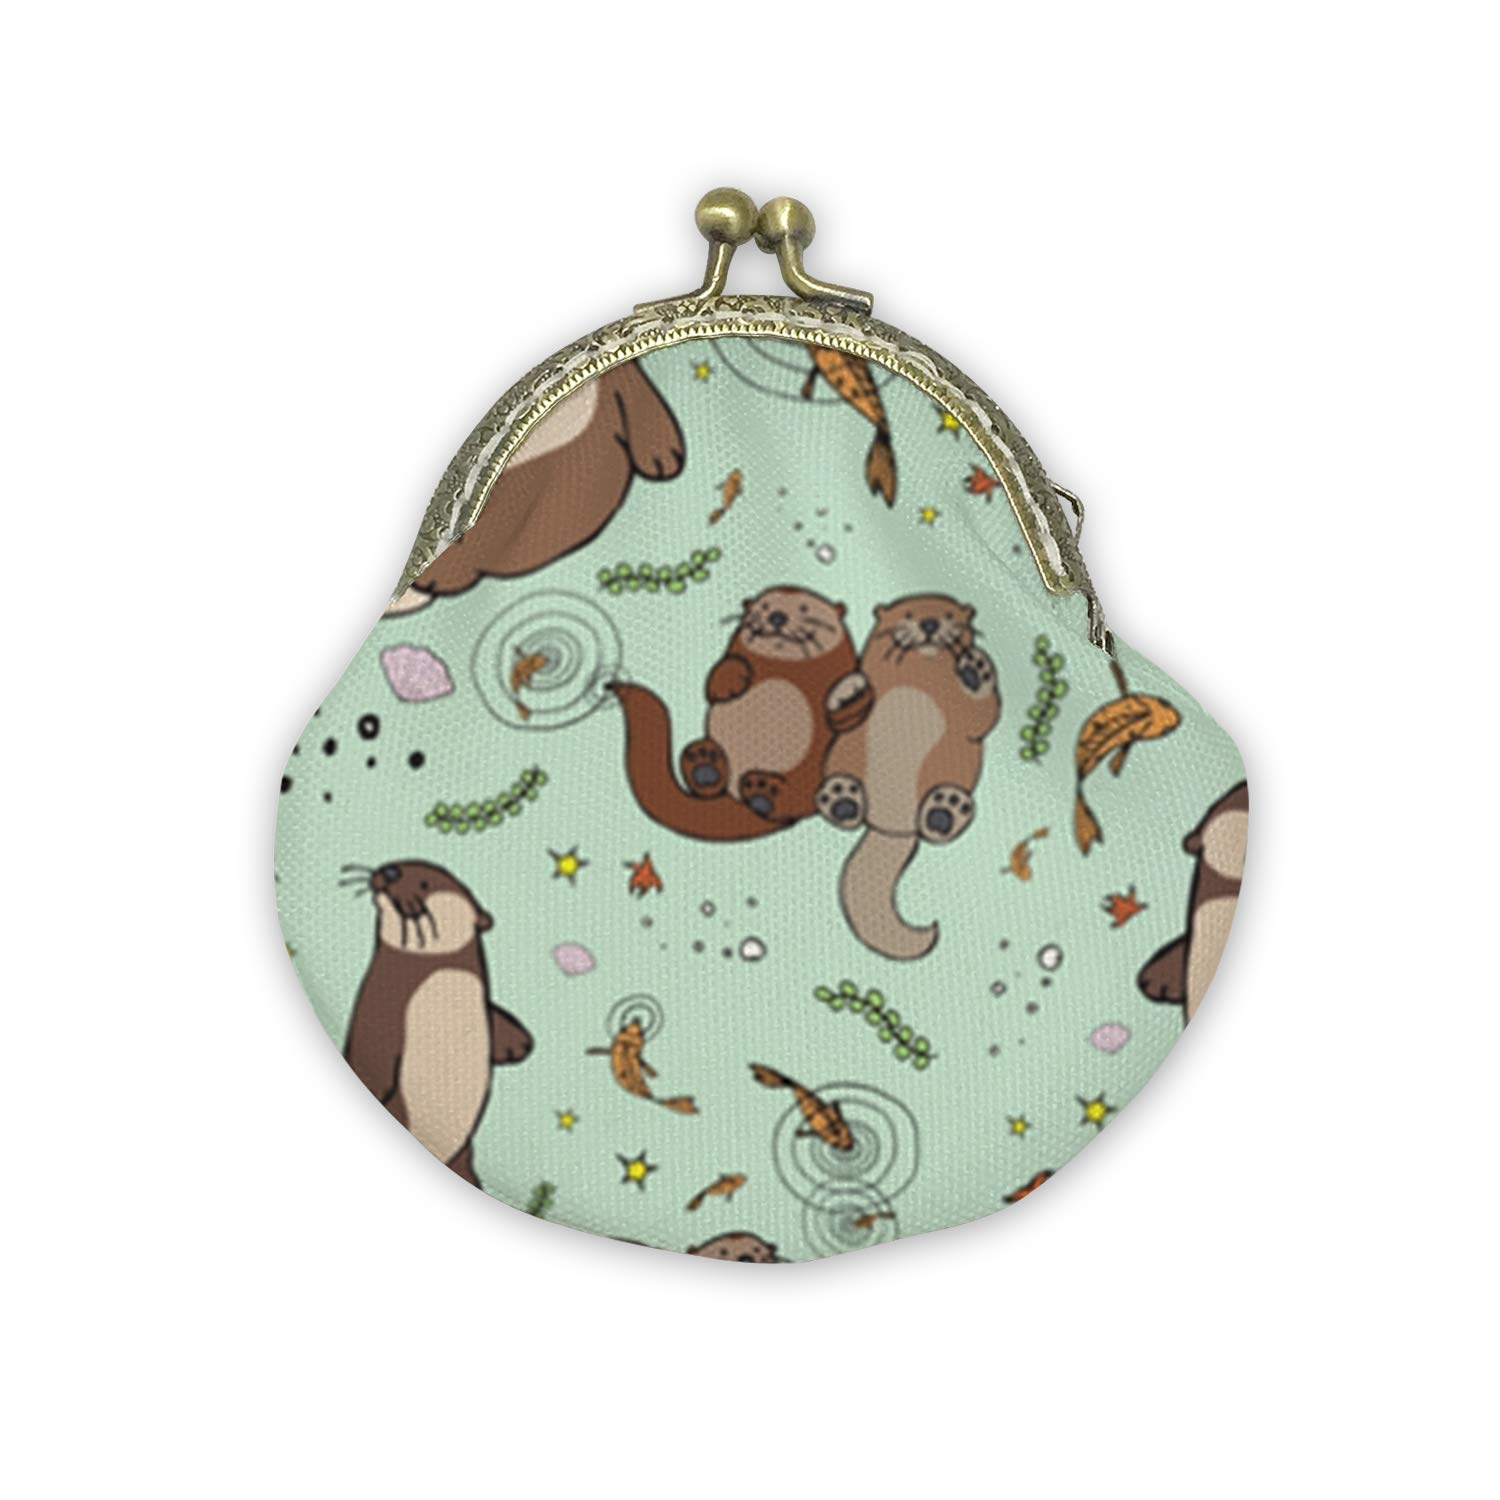 Sea Otters Art Mouth Gold Bag Canvas Coin Purse Cash Bag Small Purse Wallets Mini Money Bag Change Pouch Key Holder Double Sides Printing